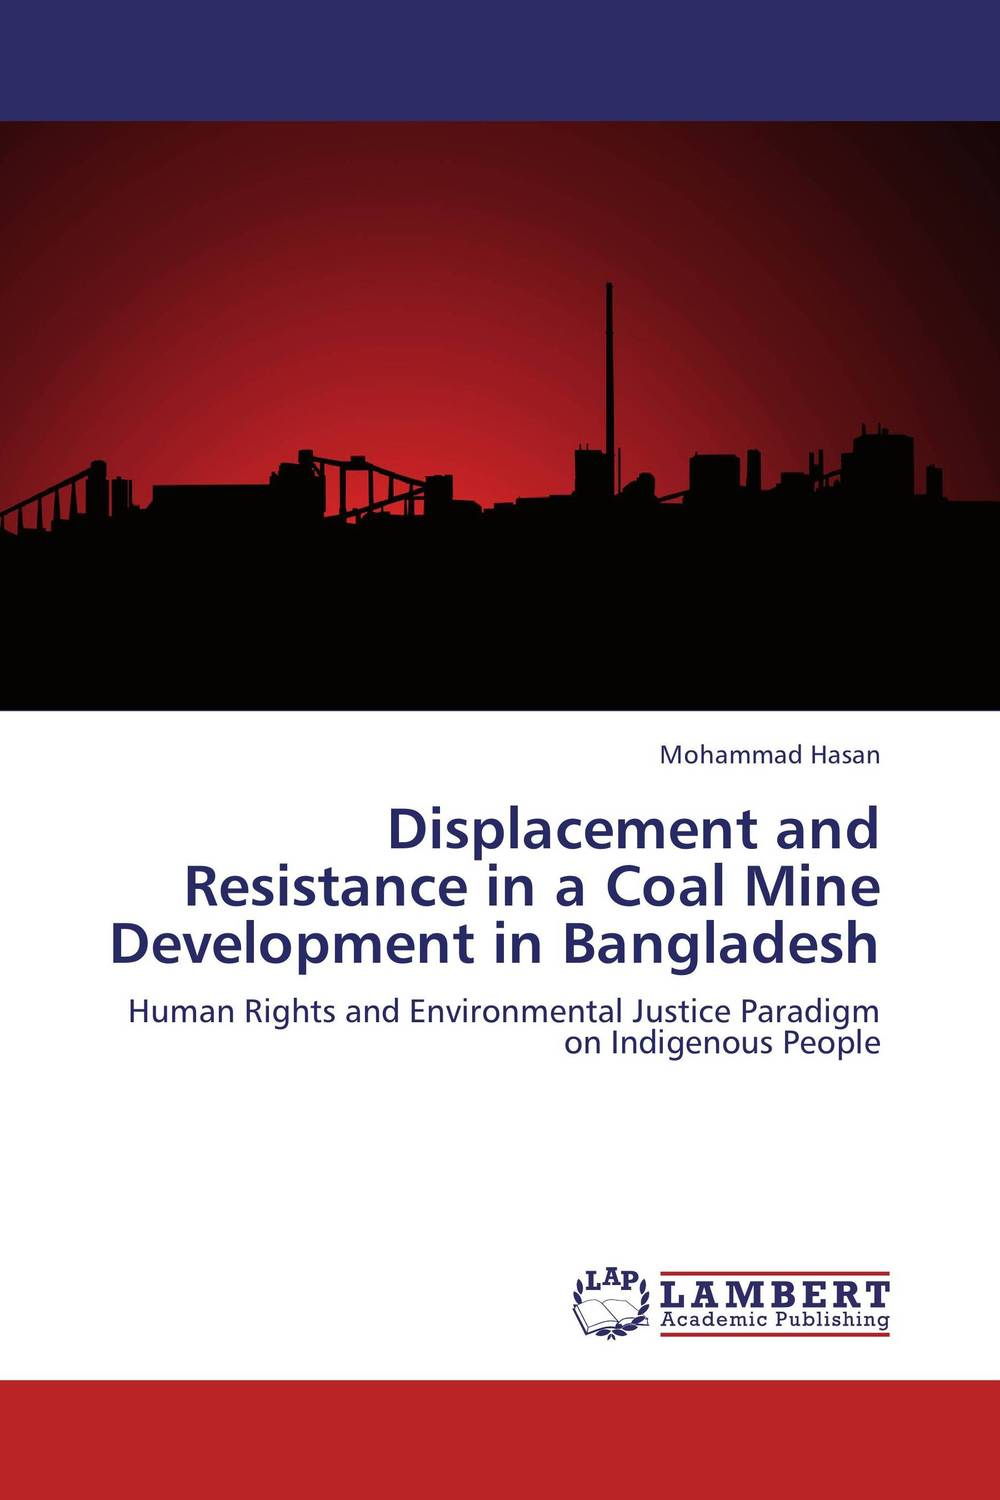 Displacement and Resistance in a Coal Mine Development in Bangladesh fluids mixing and displacement in inclined geometries